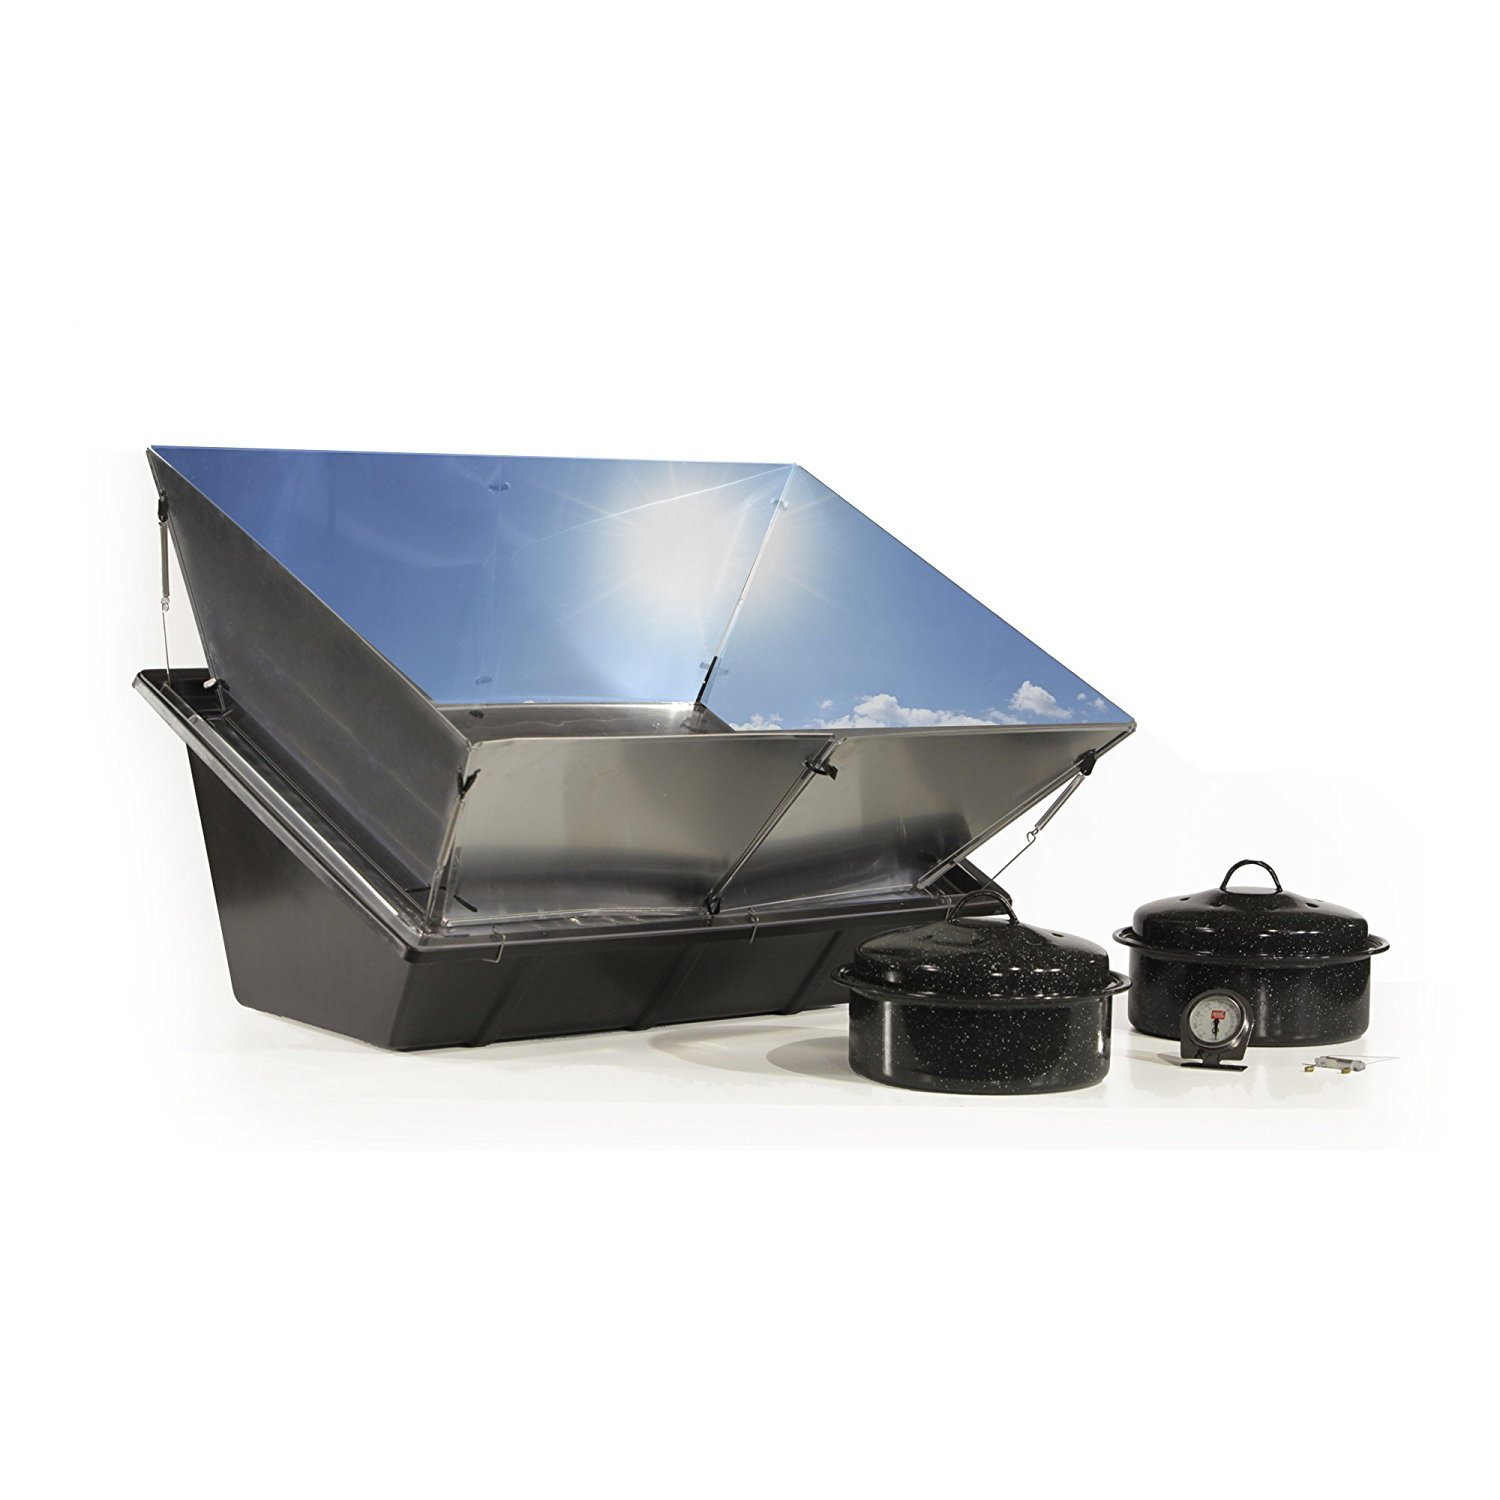 solavore, solar over, solar cooker, camping